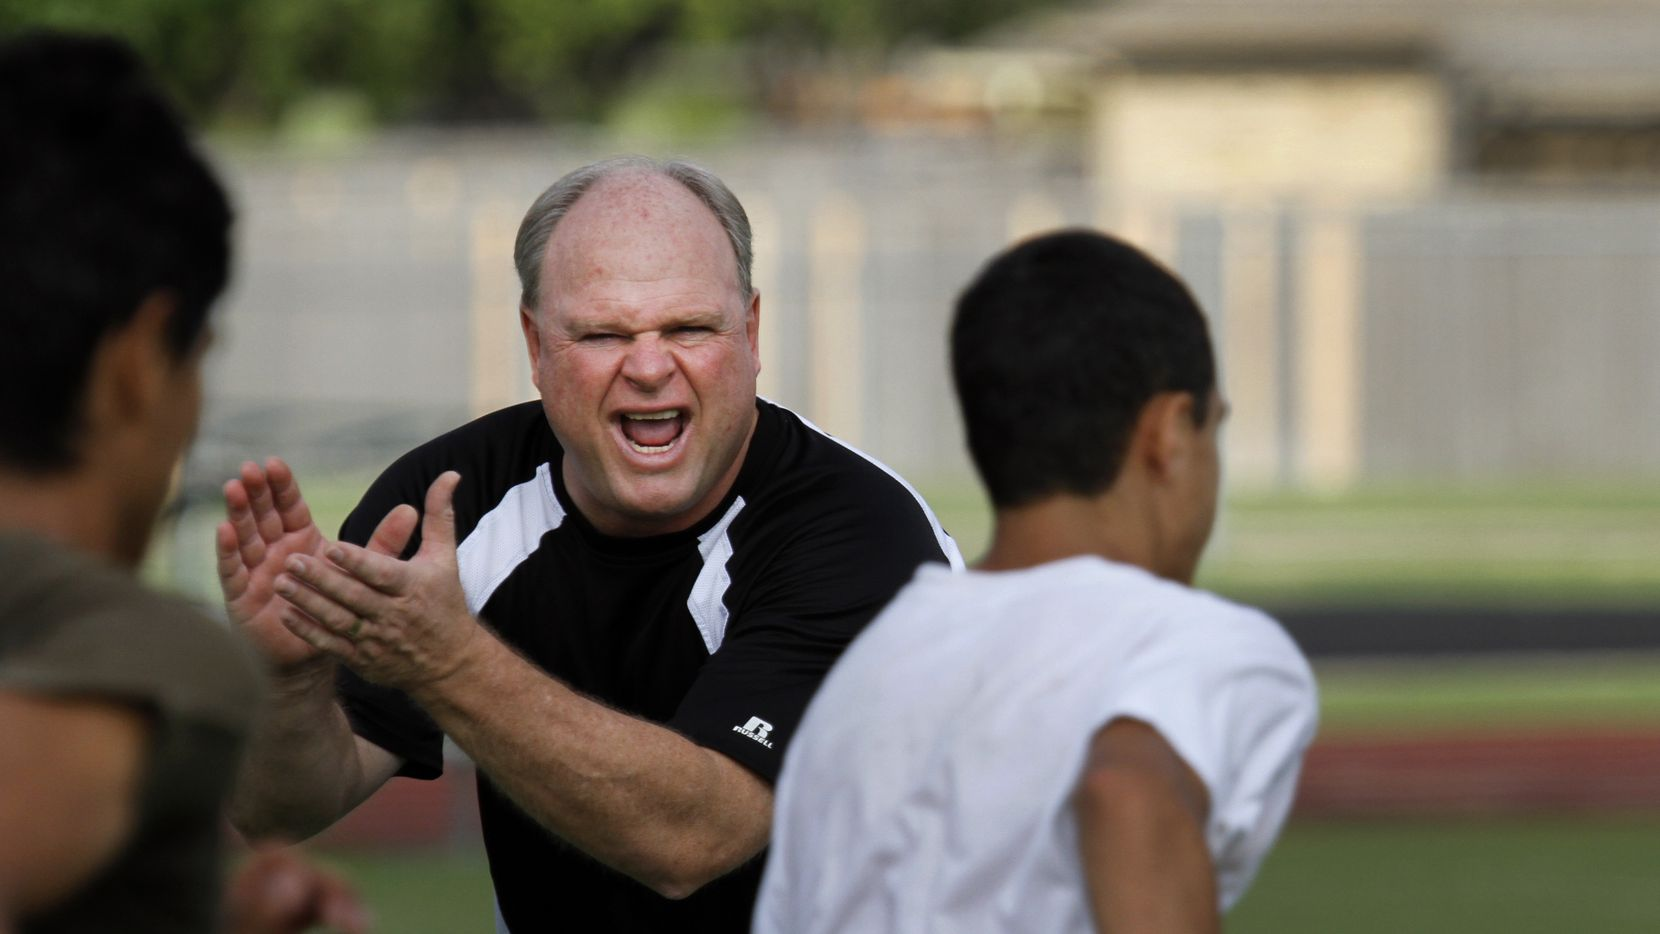 Jim Ledford, head football coach and athletic coordinator at Berkner High School, cheers up students during a running session of their strengthening & conditioning camp on July 14, 2010.